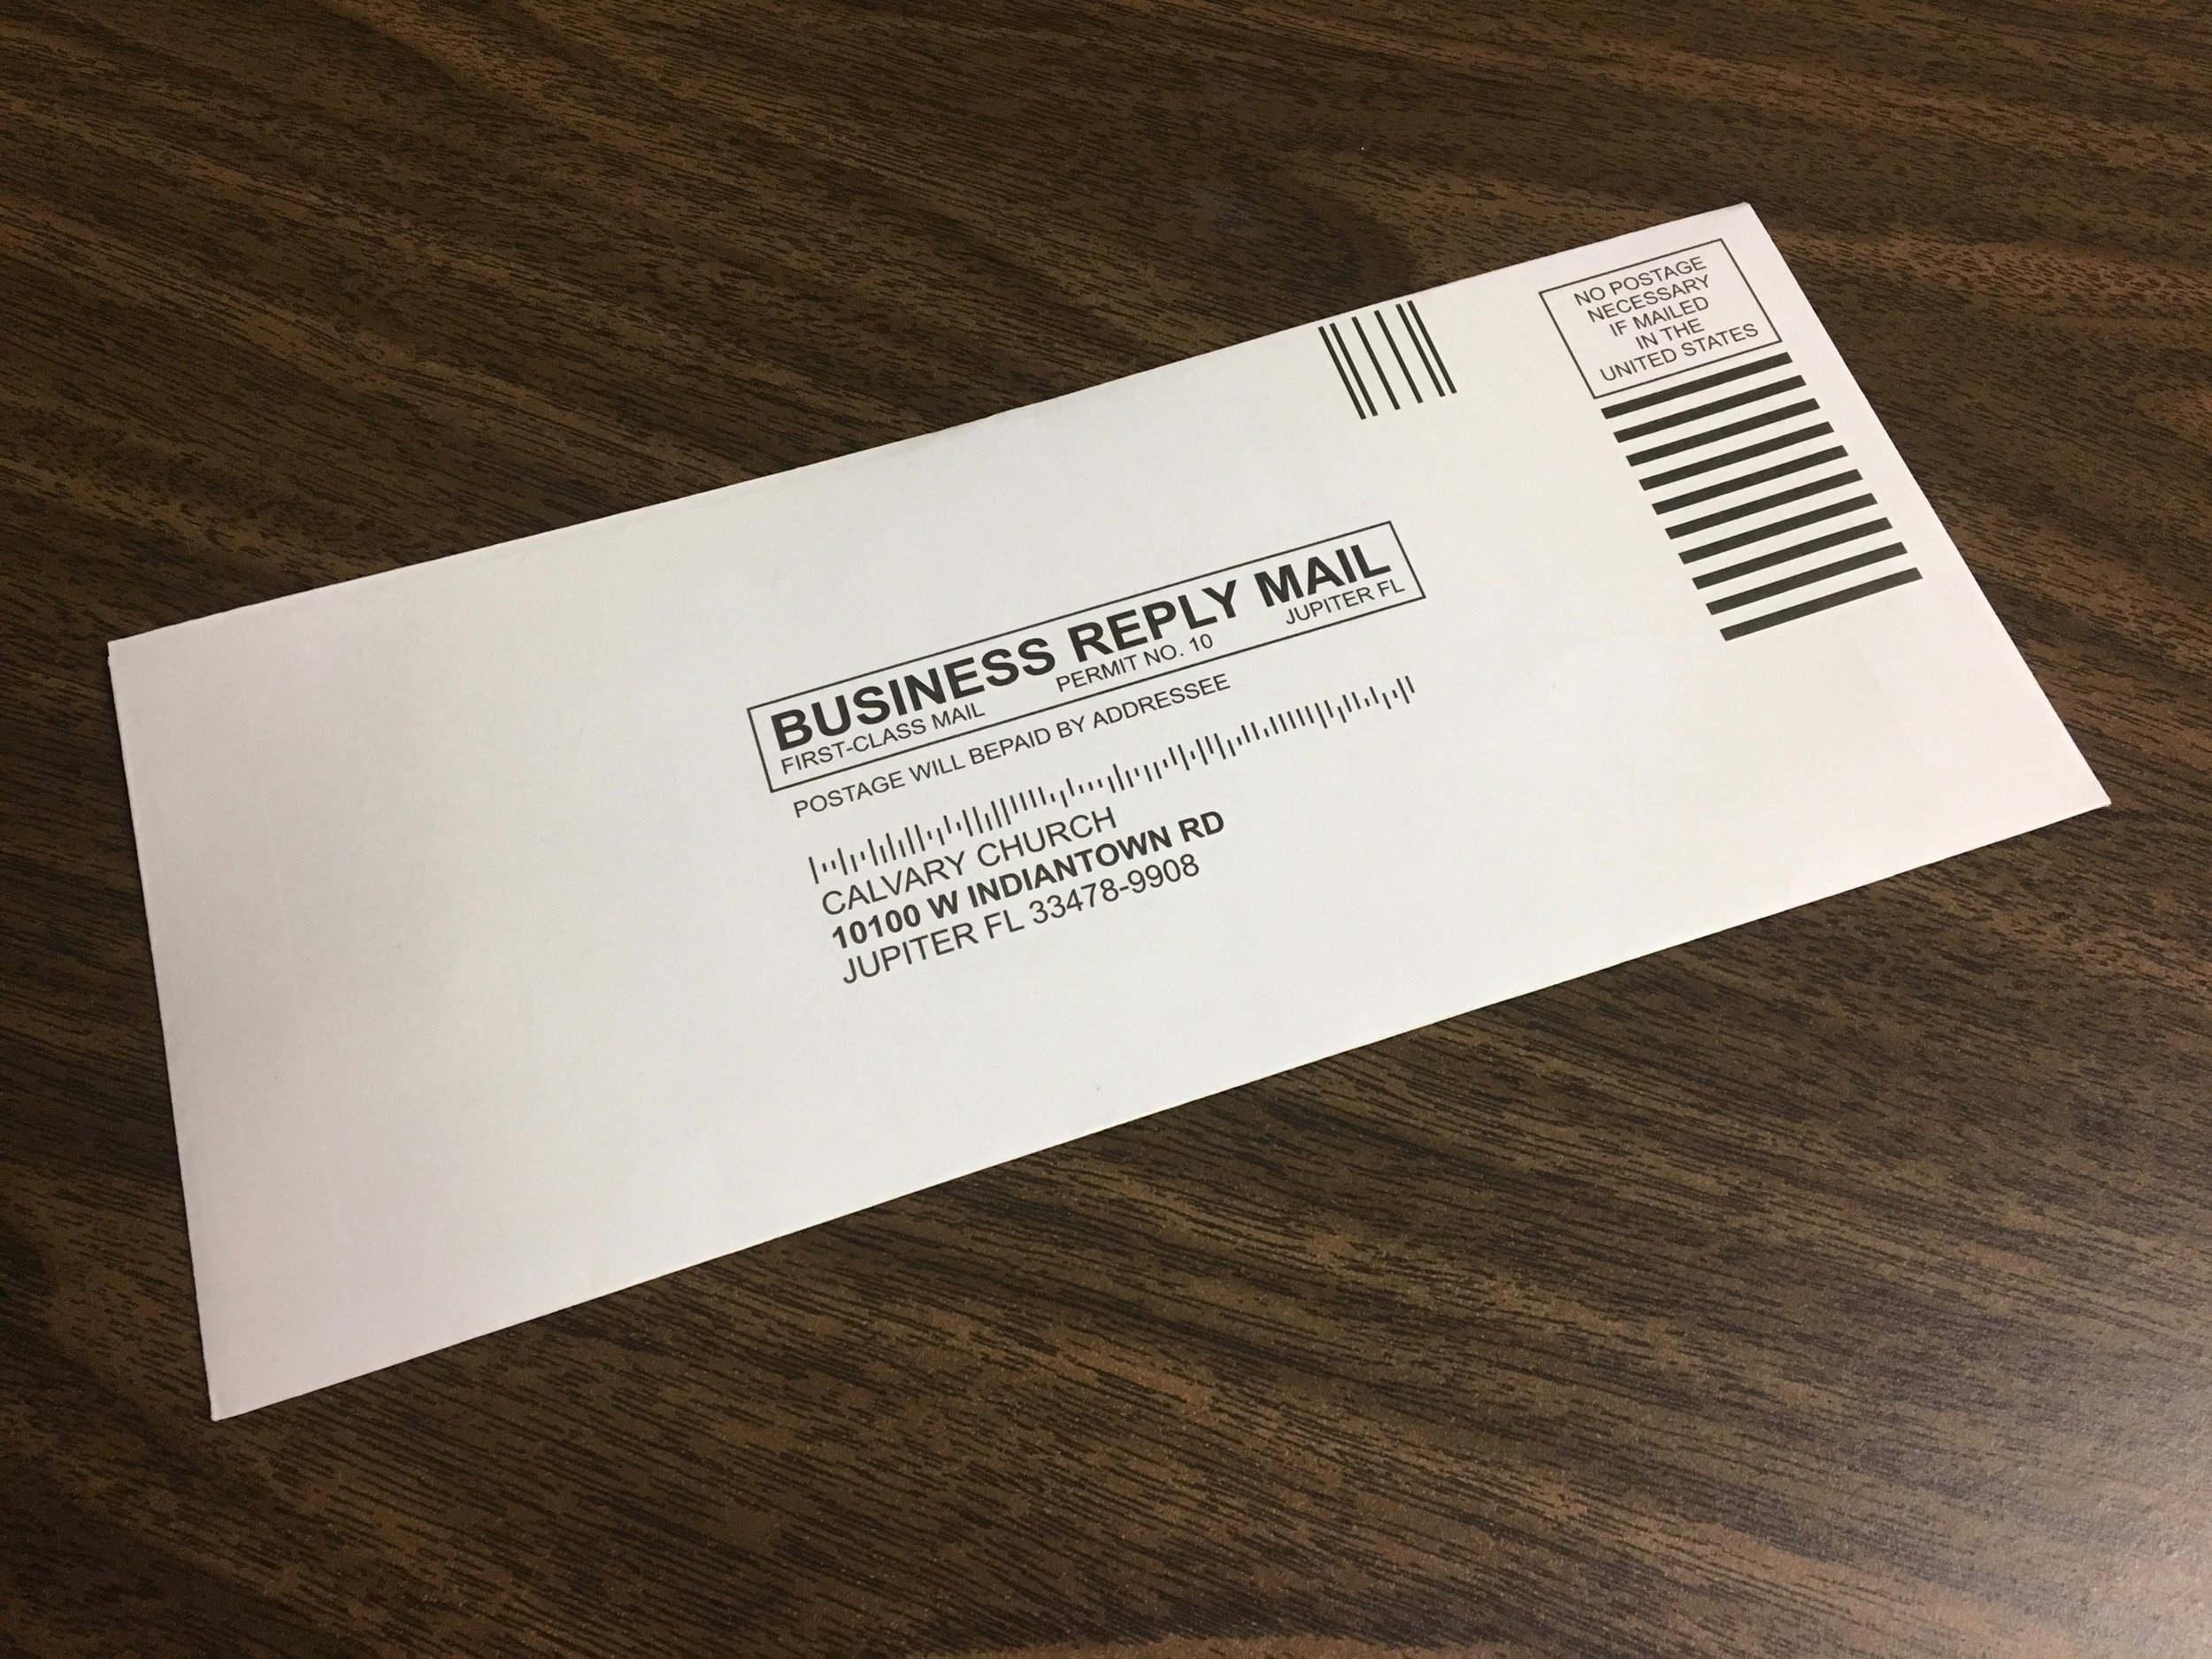 Drop it in the Mail - All tithe envelopes offer prepaid mailing. Guests can mail any tithe or offering to the church directly. No postage necessary.